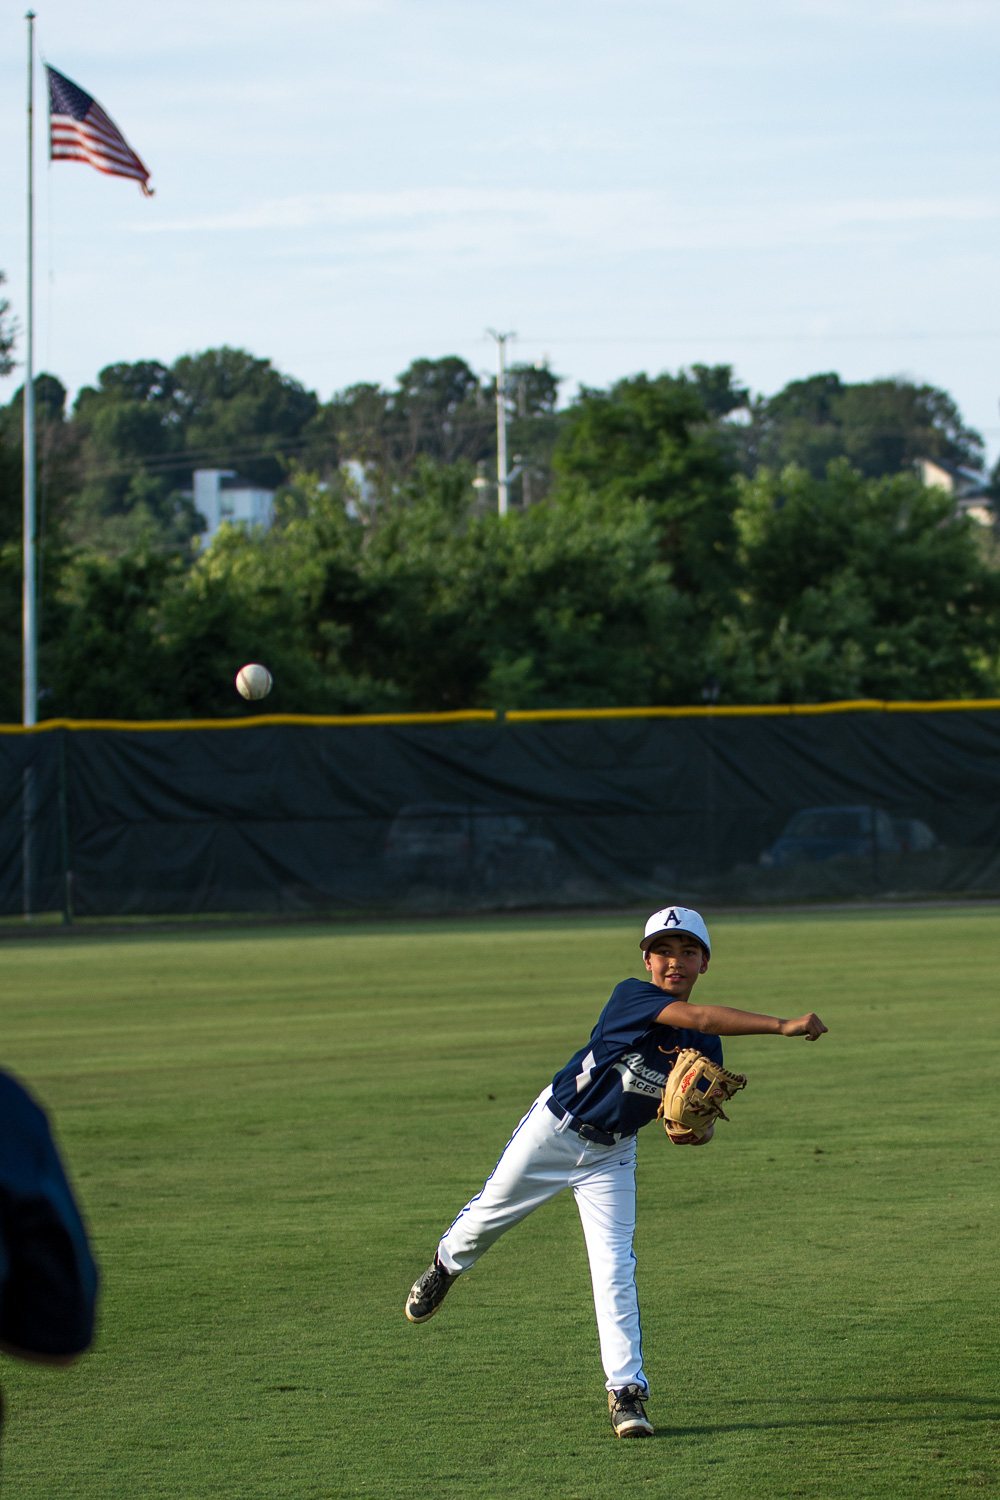 20160707 - DC Grays vs Aces-5650.jpg